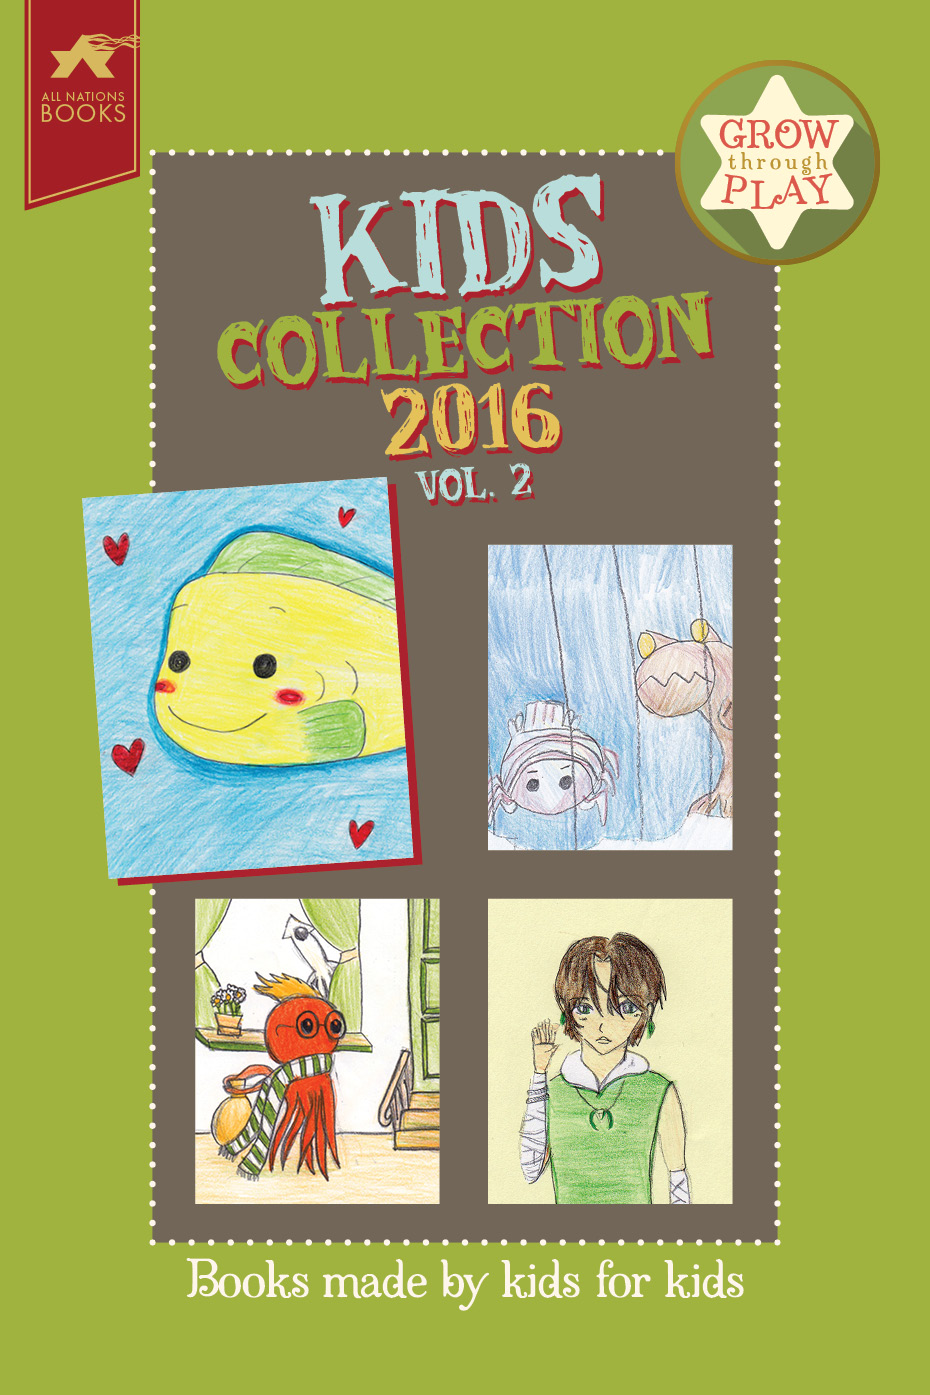 Kids Collection 2016 Vol. 2